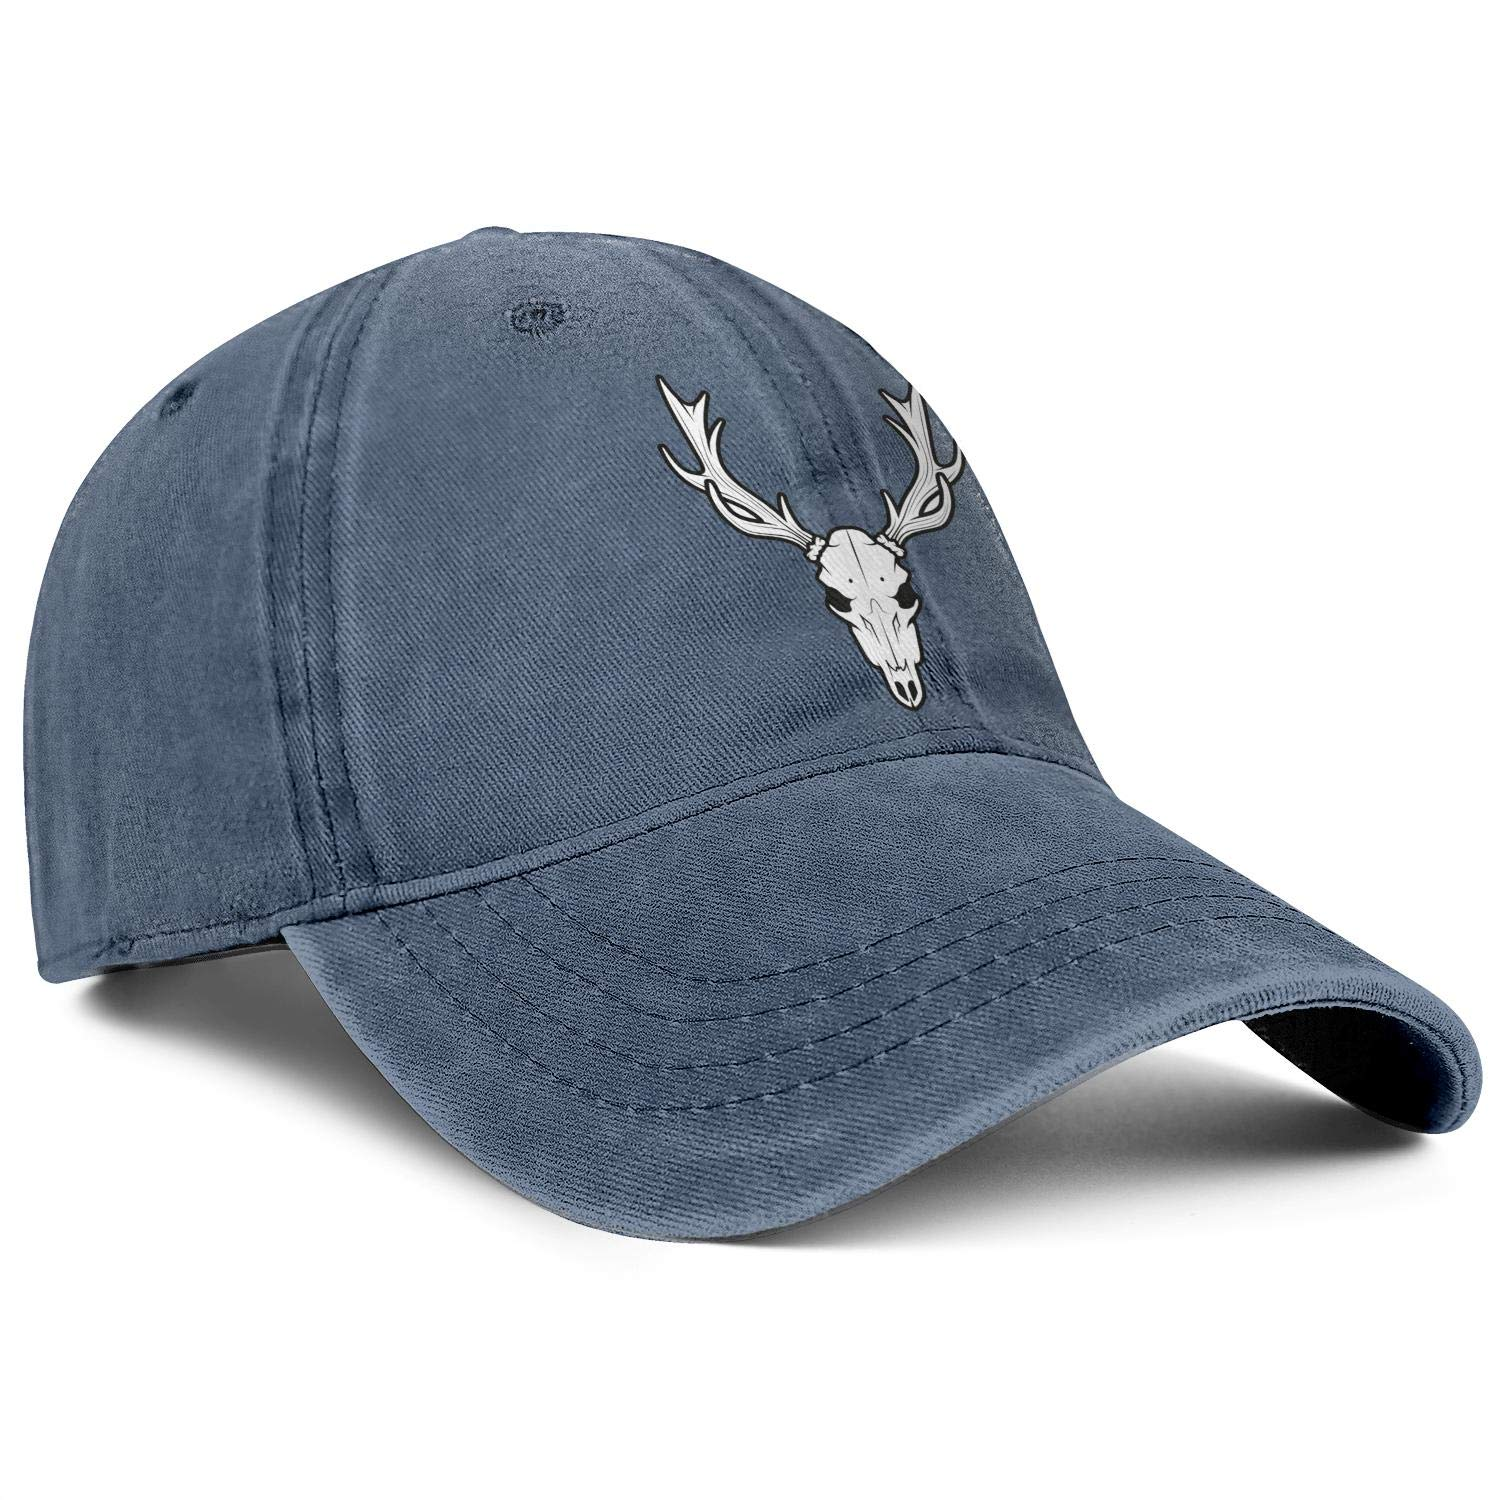 HURSUEE Man Women Denim Deer Skull Design Caps Cowboy Hats Trendy Hiking Cap